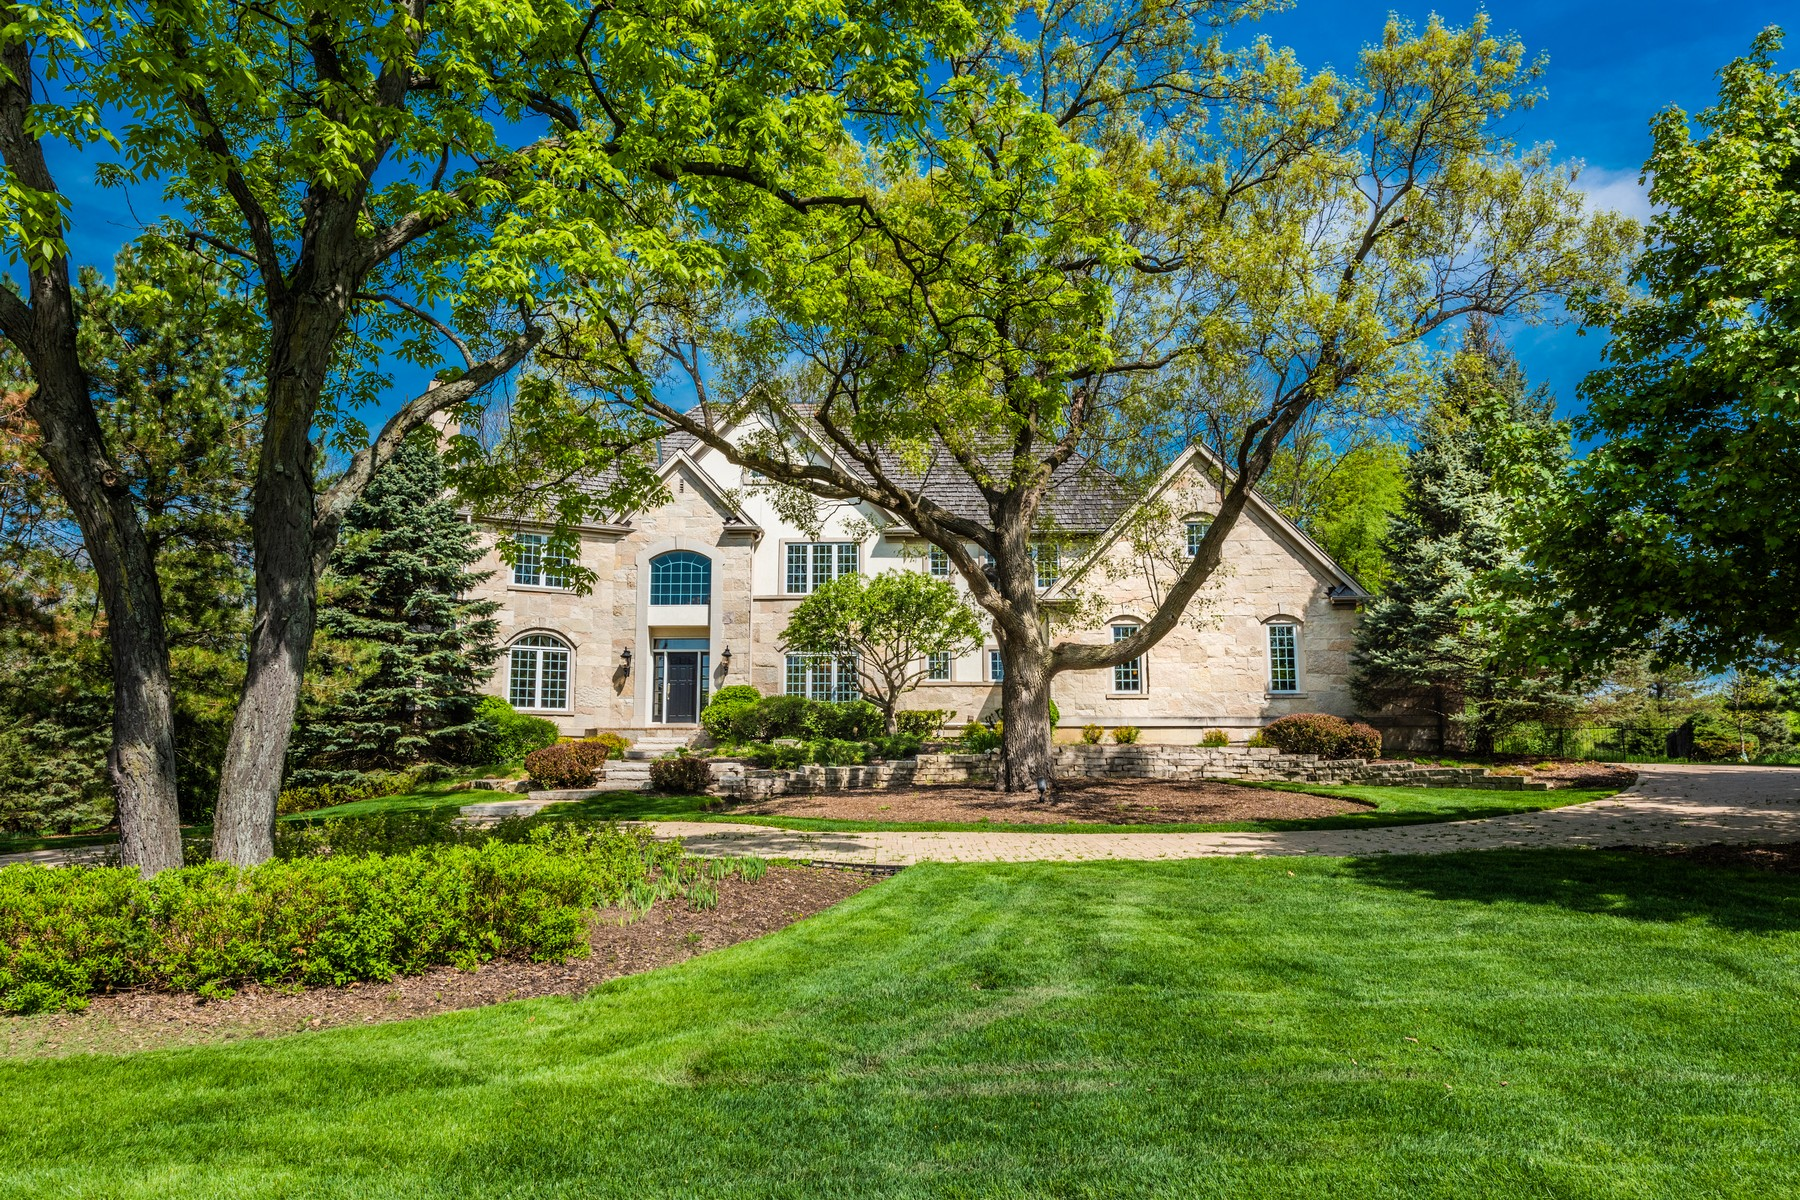 Single Family Homes for Active at Stately Stone Manor 83 S Wynstone Drive North Barrington, Illinois 60010 United States